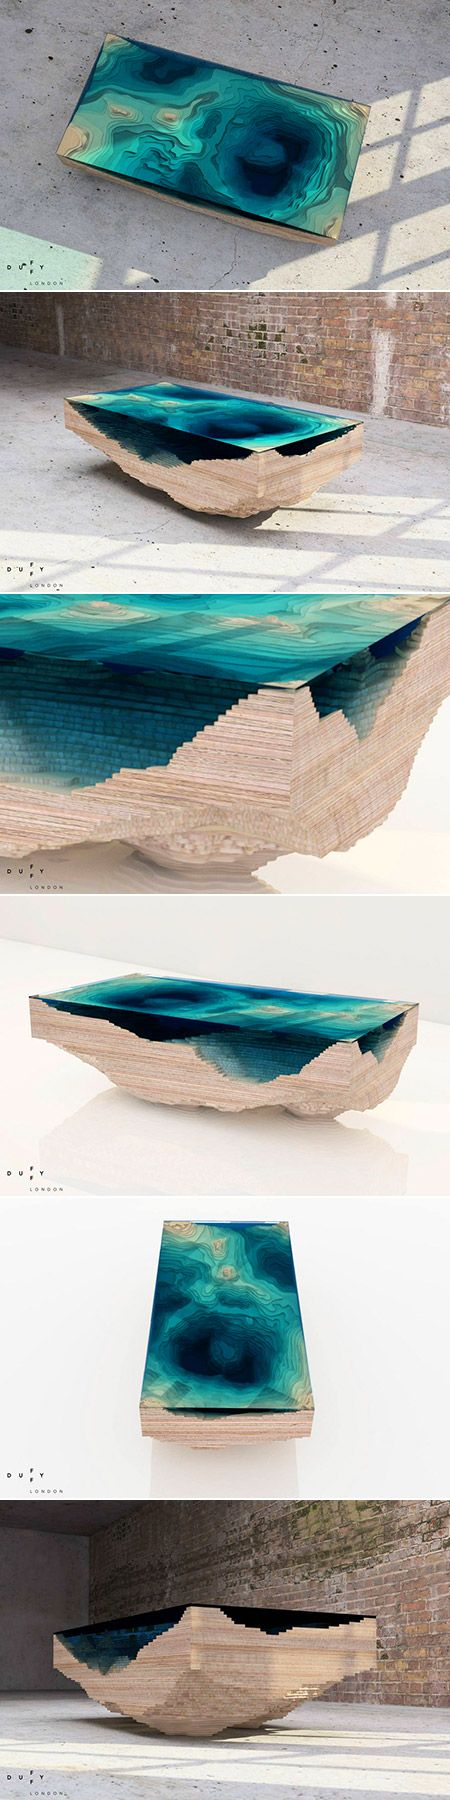 Glass table design by Duffy London - the Abyss table, which is created in a way that mimics the depths of the oceans. This unique table uses multiple layers of stacked glass and wood, completing the table as a three-dimensional representation of a geological map.